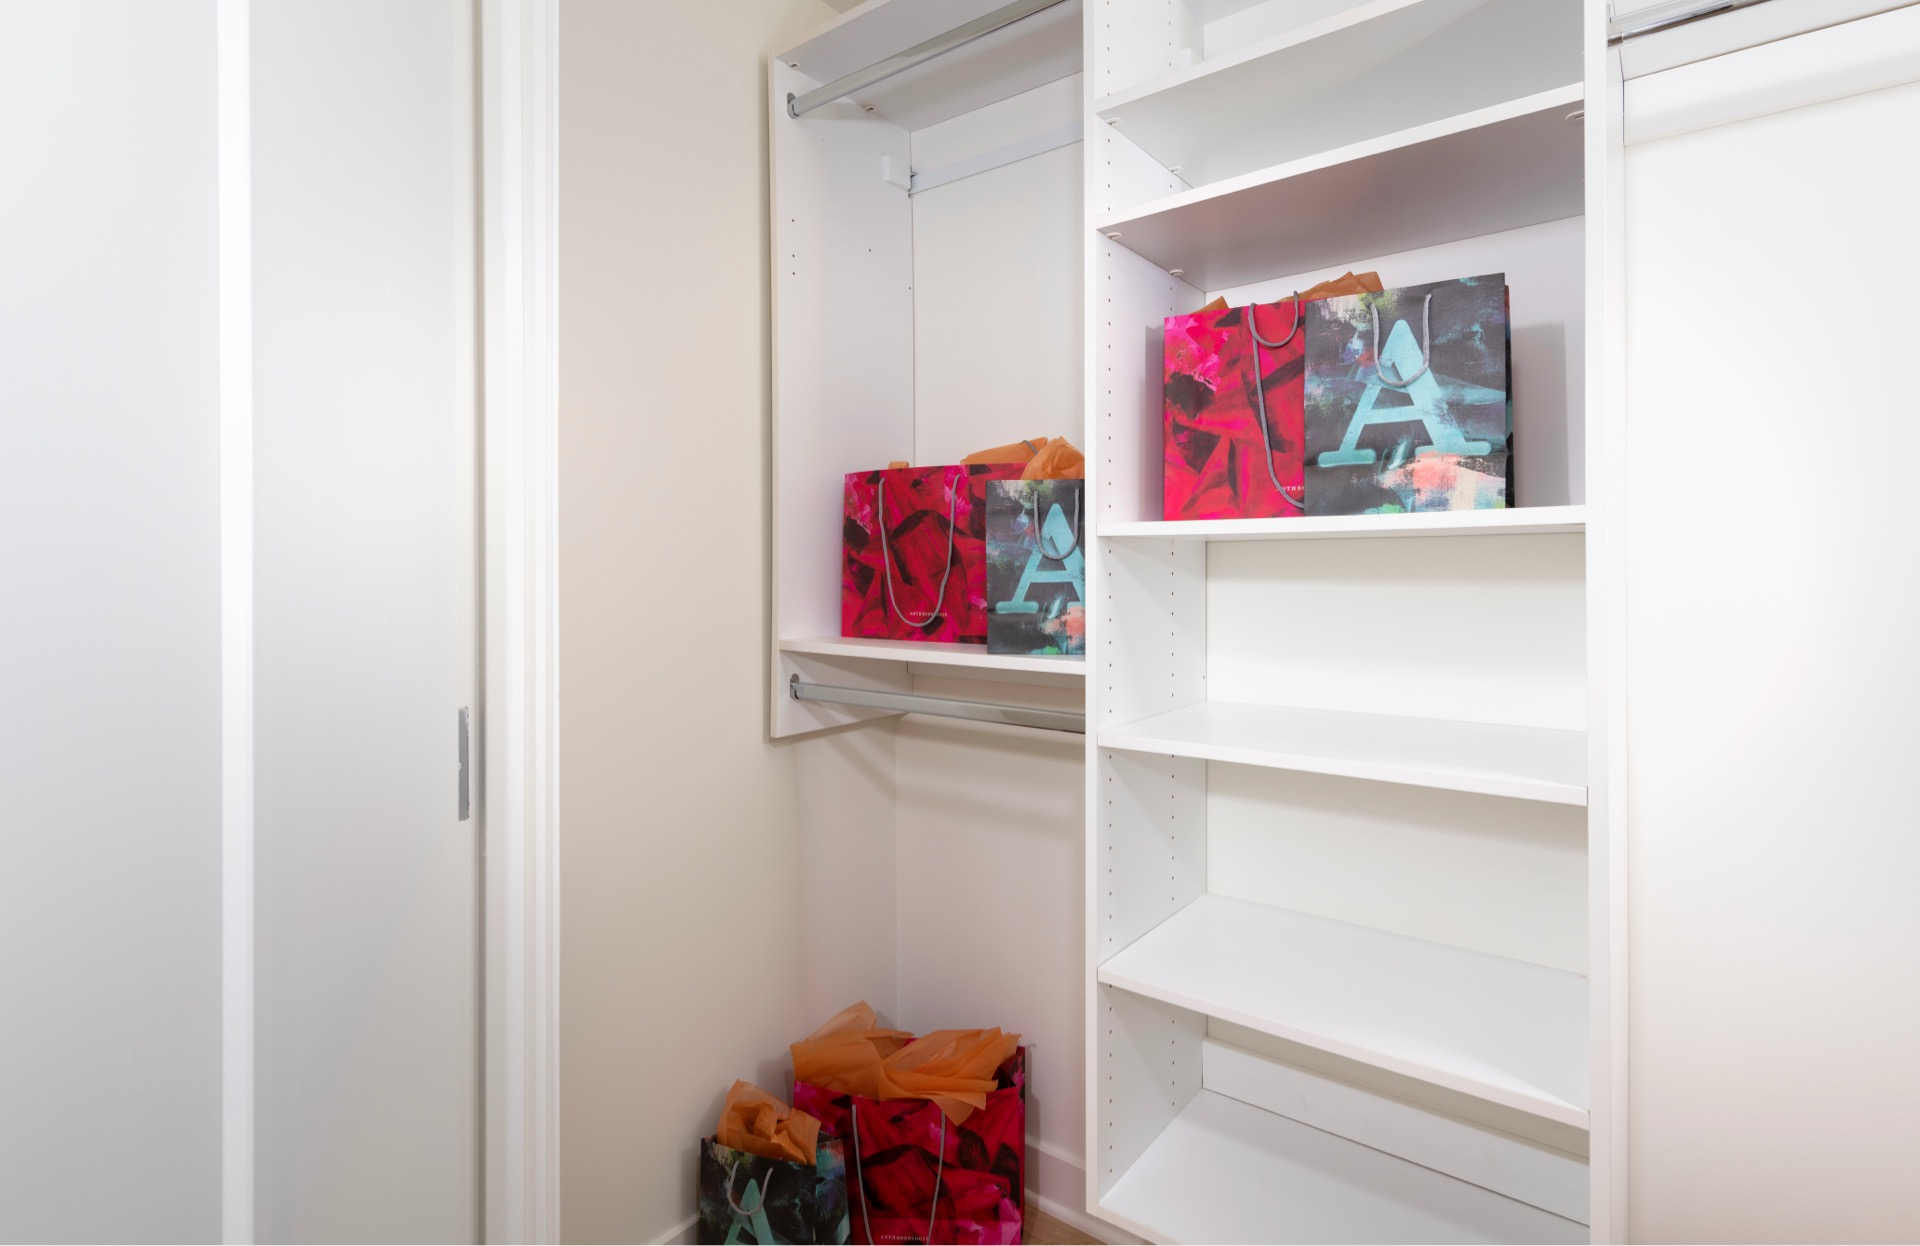 Built in closet shelving aids in the organizational charm and conveniences of your walk-in closet.*